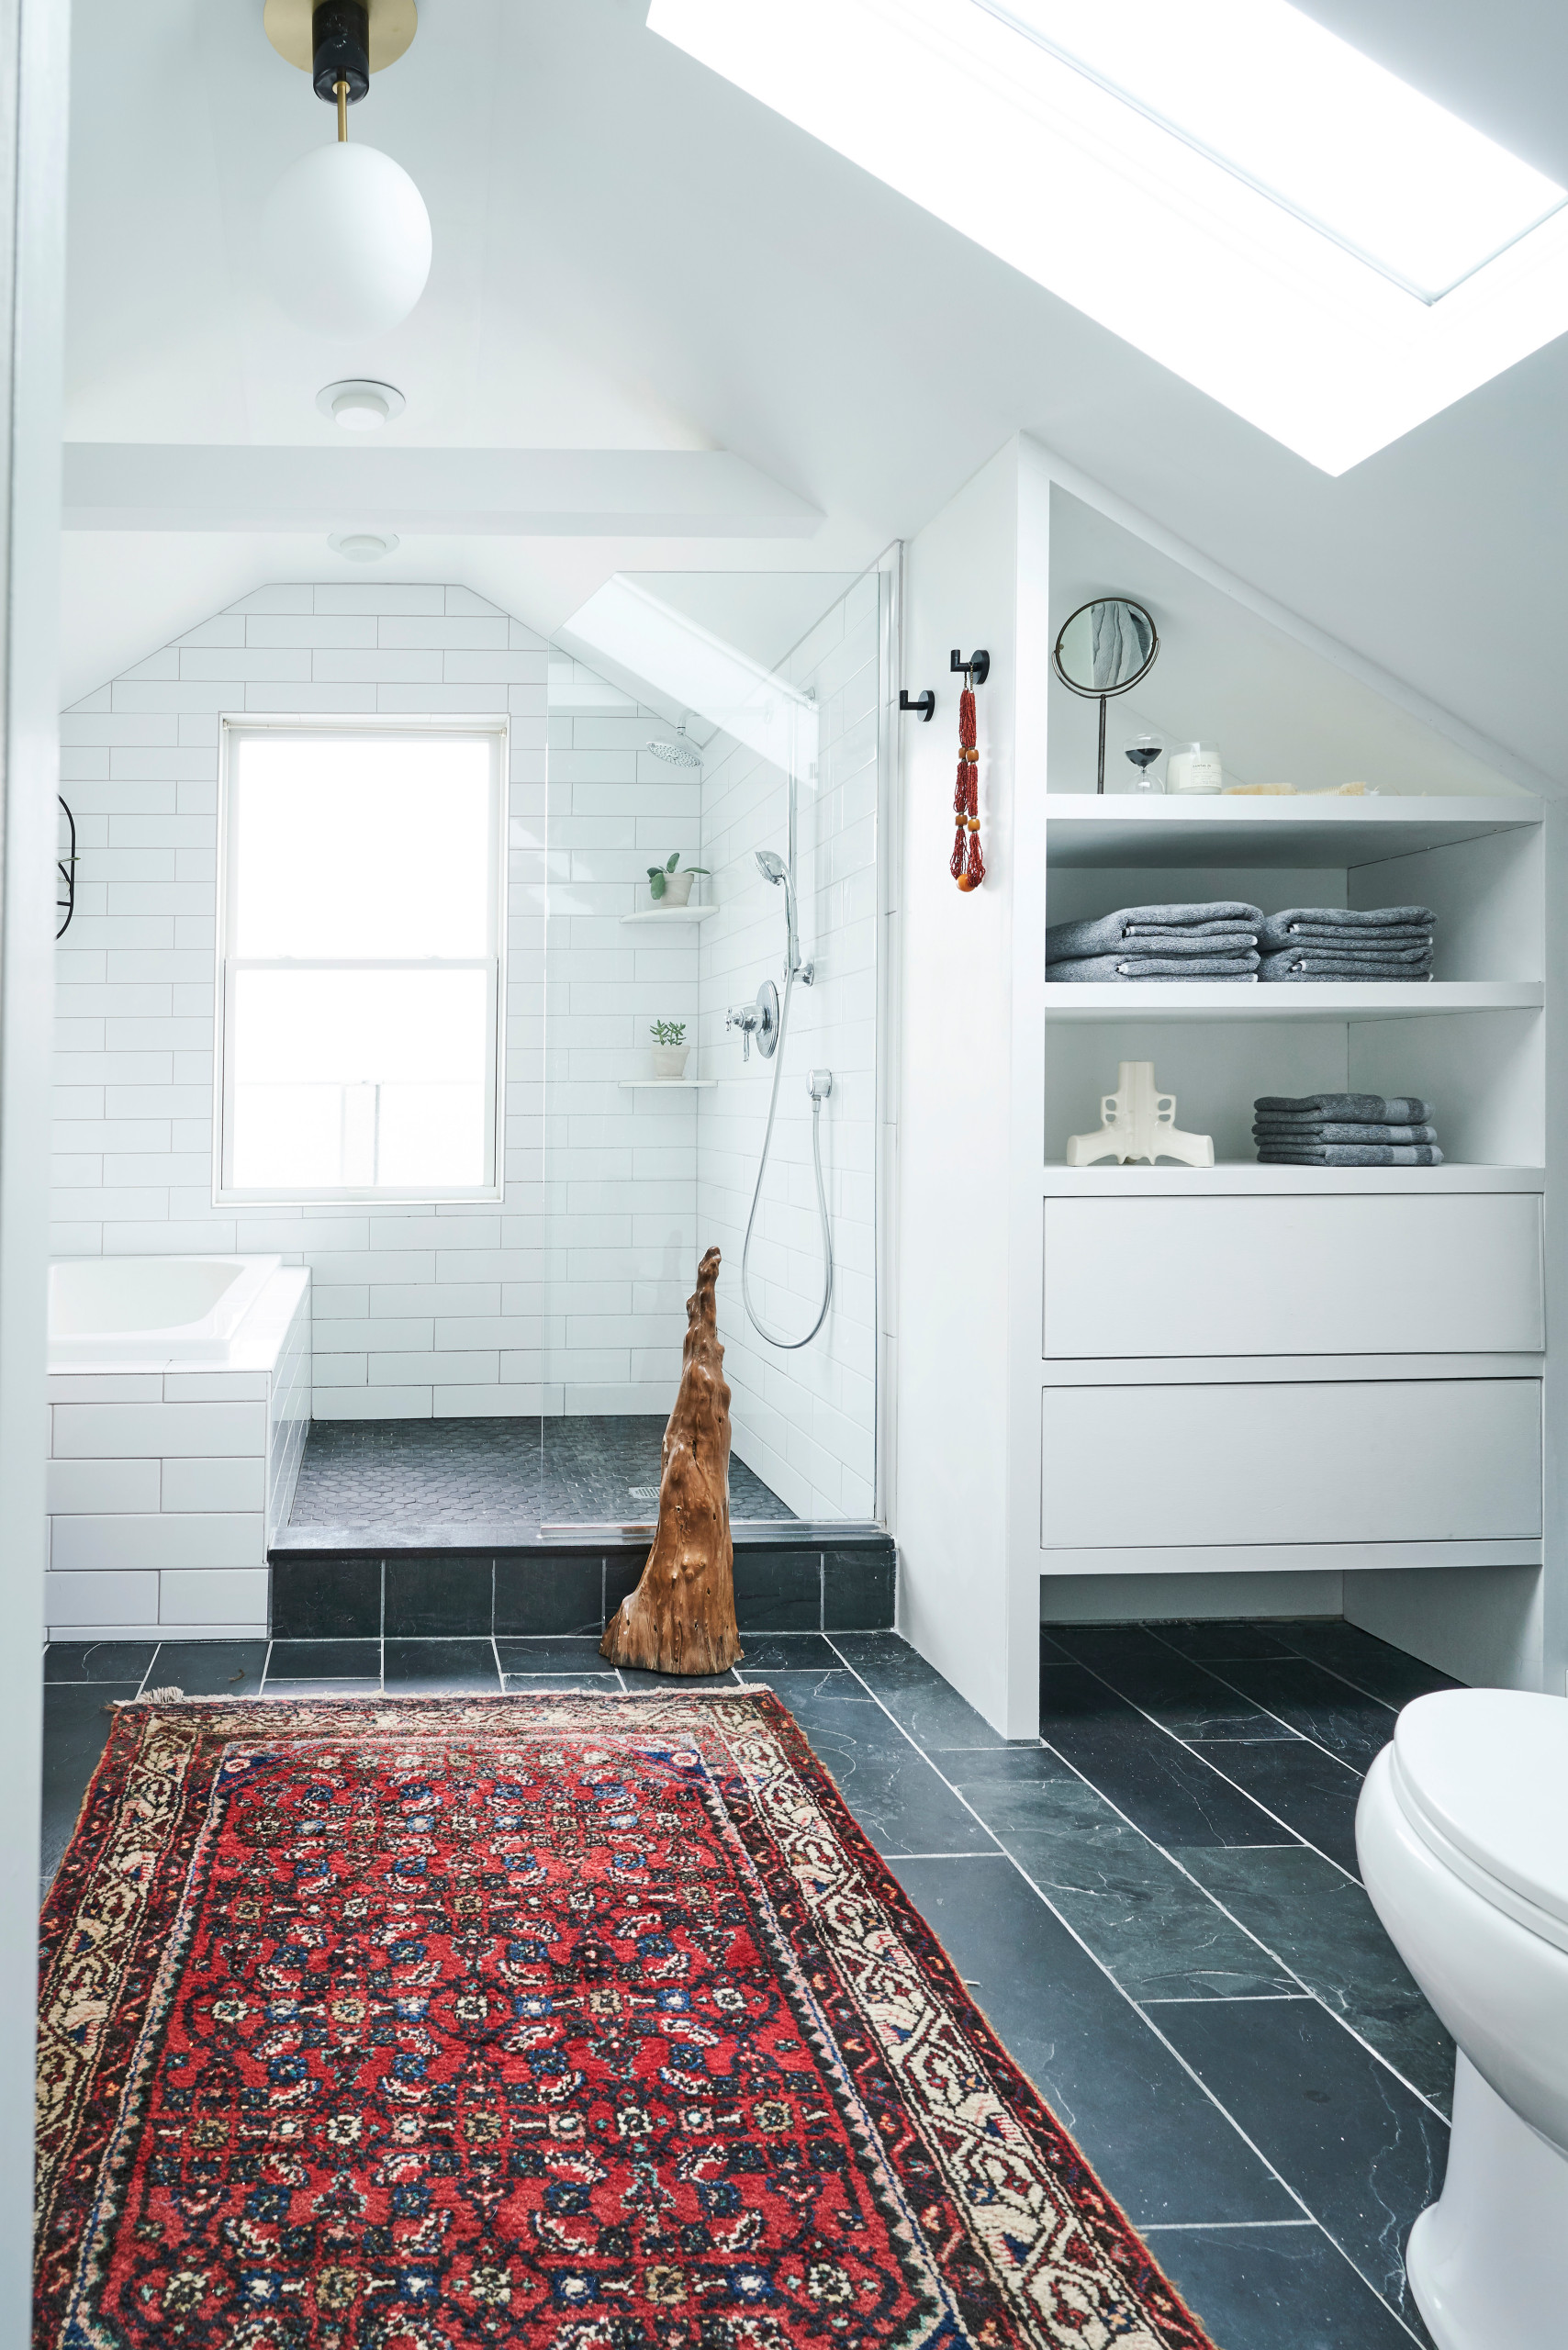 75 Beautiful Modern Bathroom With A Floating Vanity Pictures Ideas February 2021 Houzz